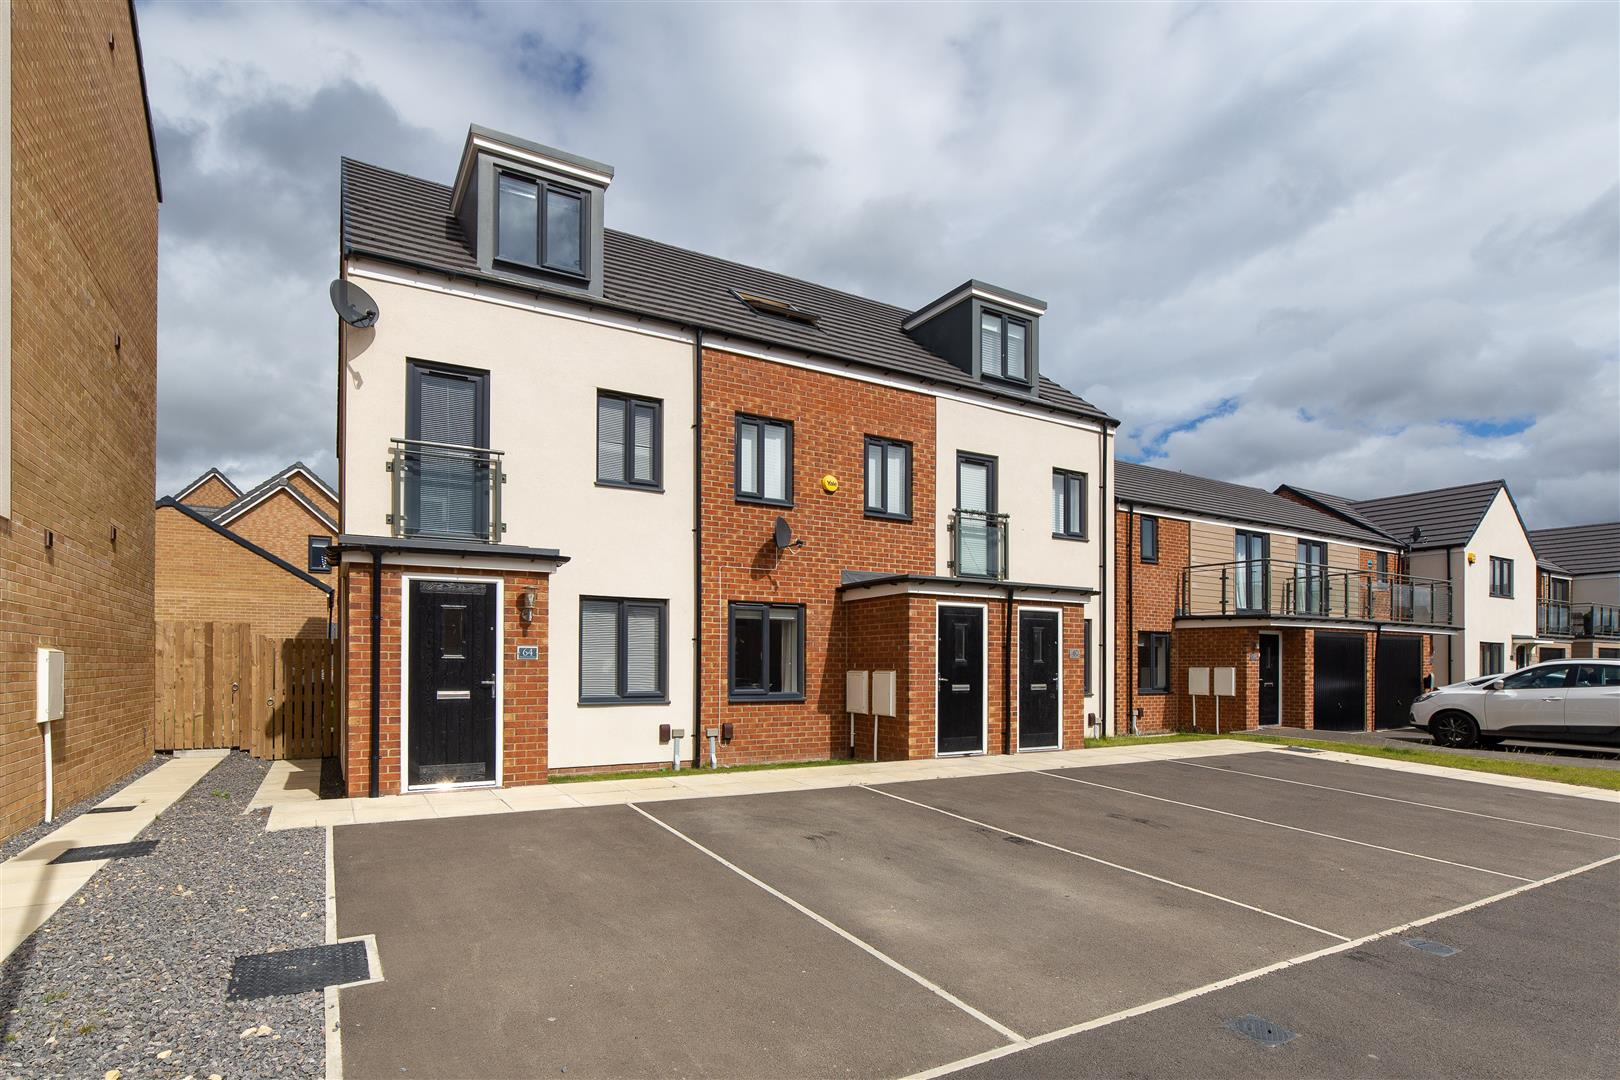 3 bed town house for sale in Newcastle Upon Tyne, NE13 9EG, NE13